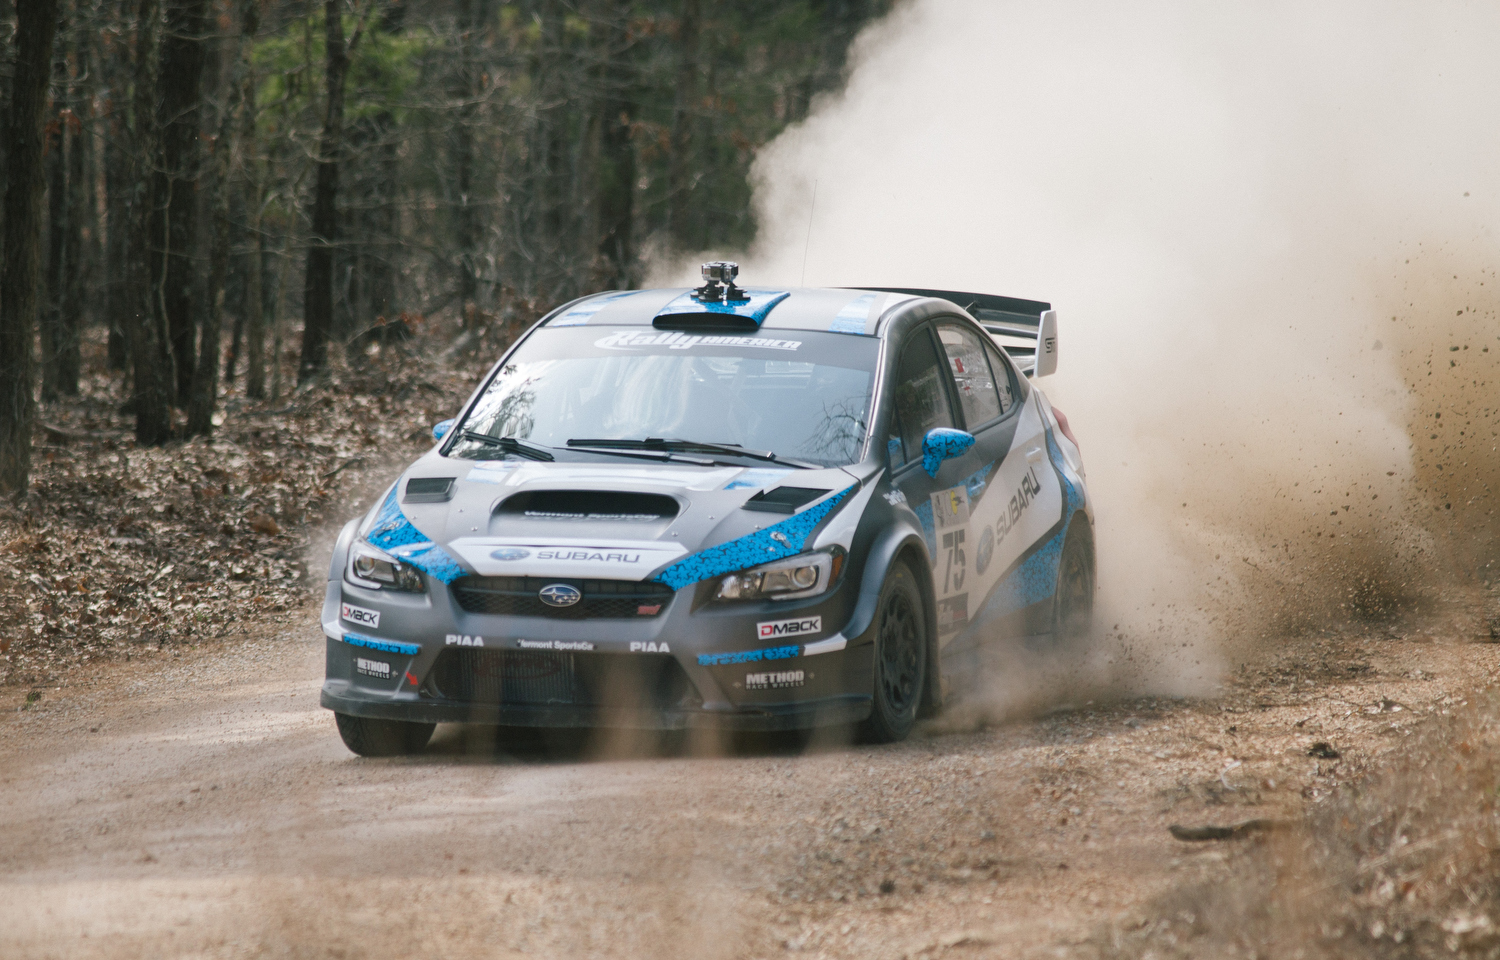 Subaru Rally Team USA driver David Higgins and co-driver Craig Drew on stage three of the race.